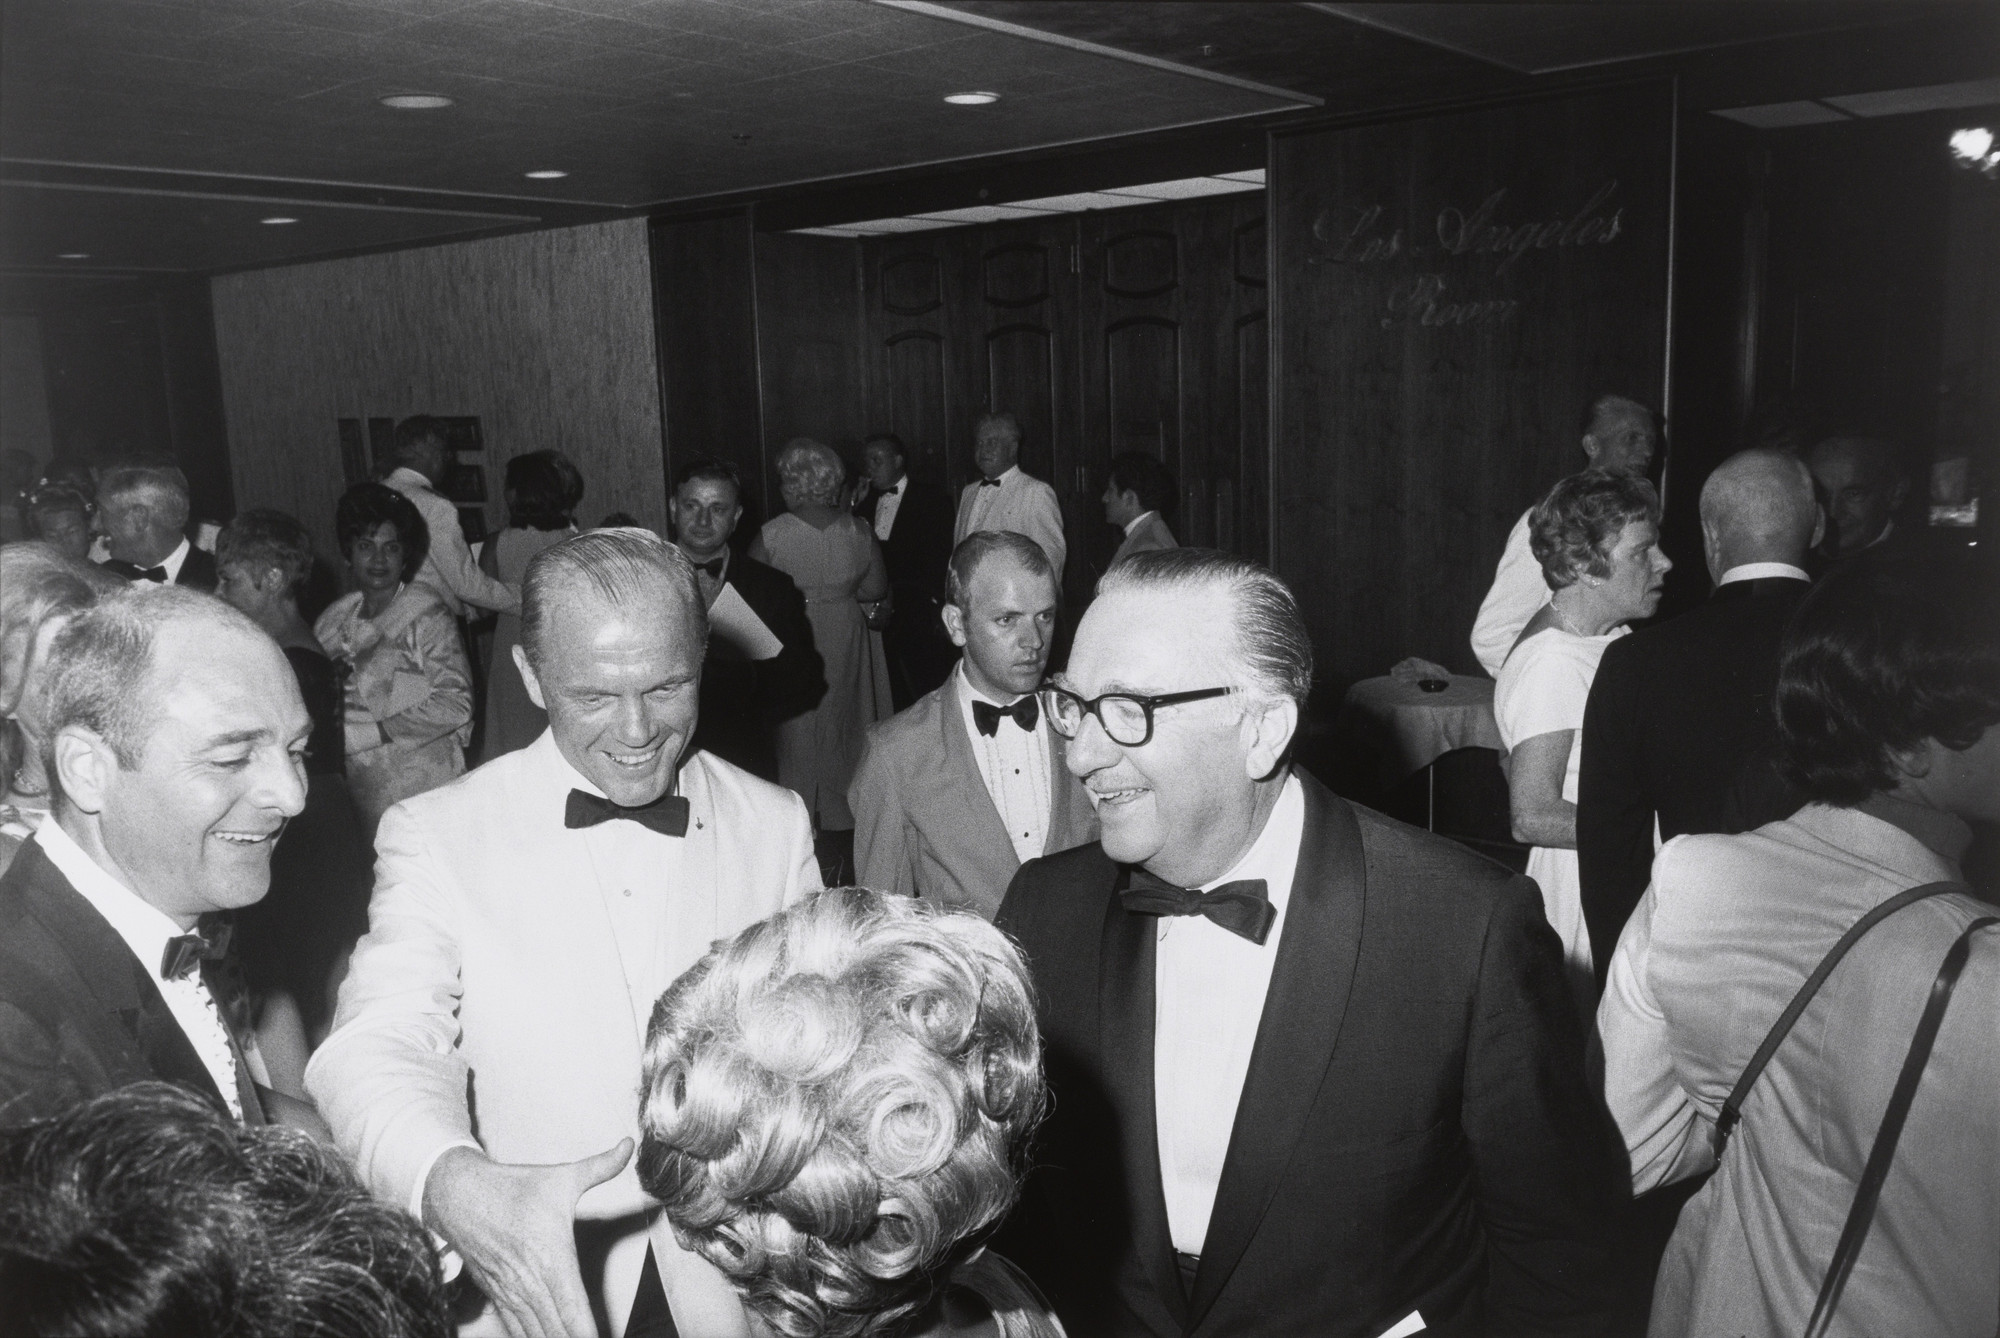 Garry Winogrand. John Glenn and Walter Cronkite, State Dinner for the Apollo XI Astronauts, Century Plaza Hotel, Los Angeles from the portfolio Big Shots. 1969